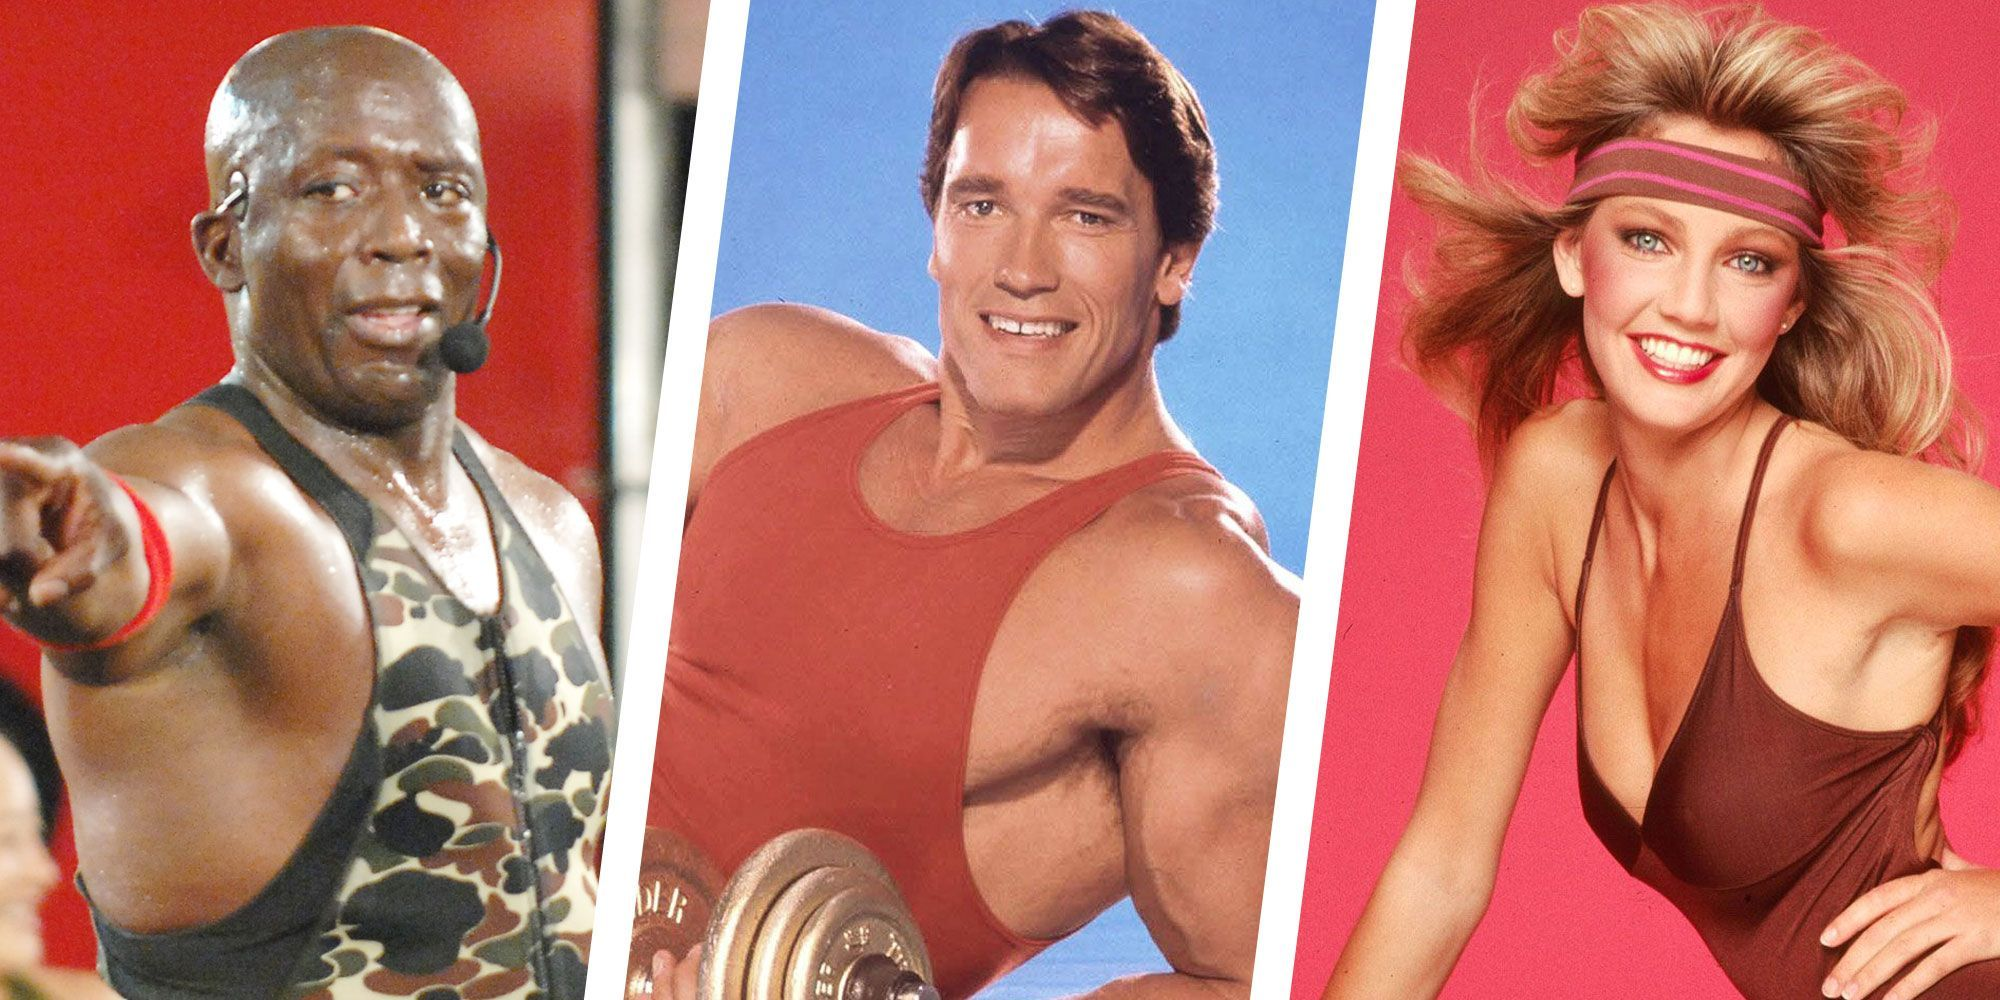 The 40 Biggest Fitness Gurus of All